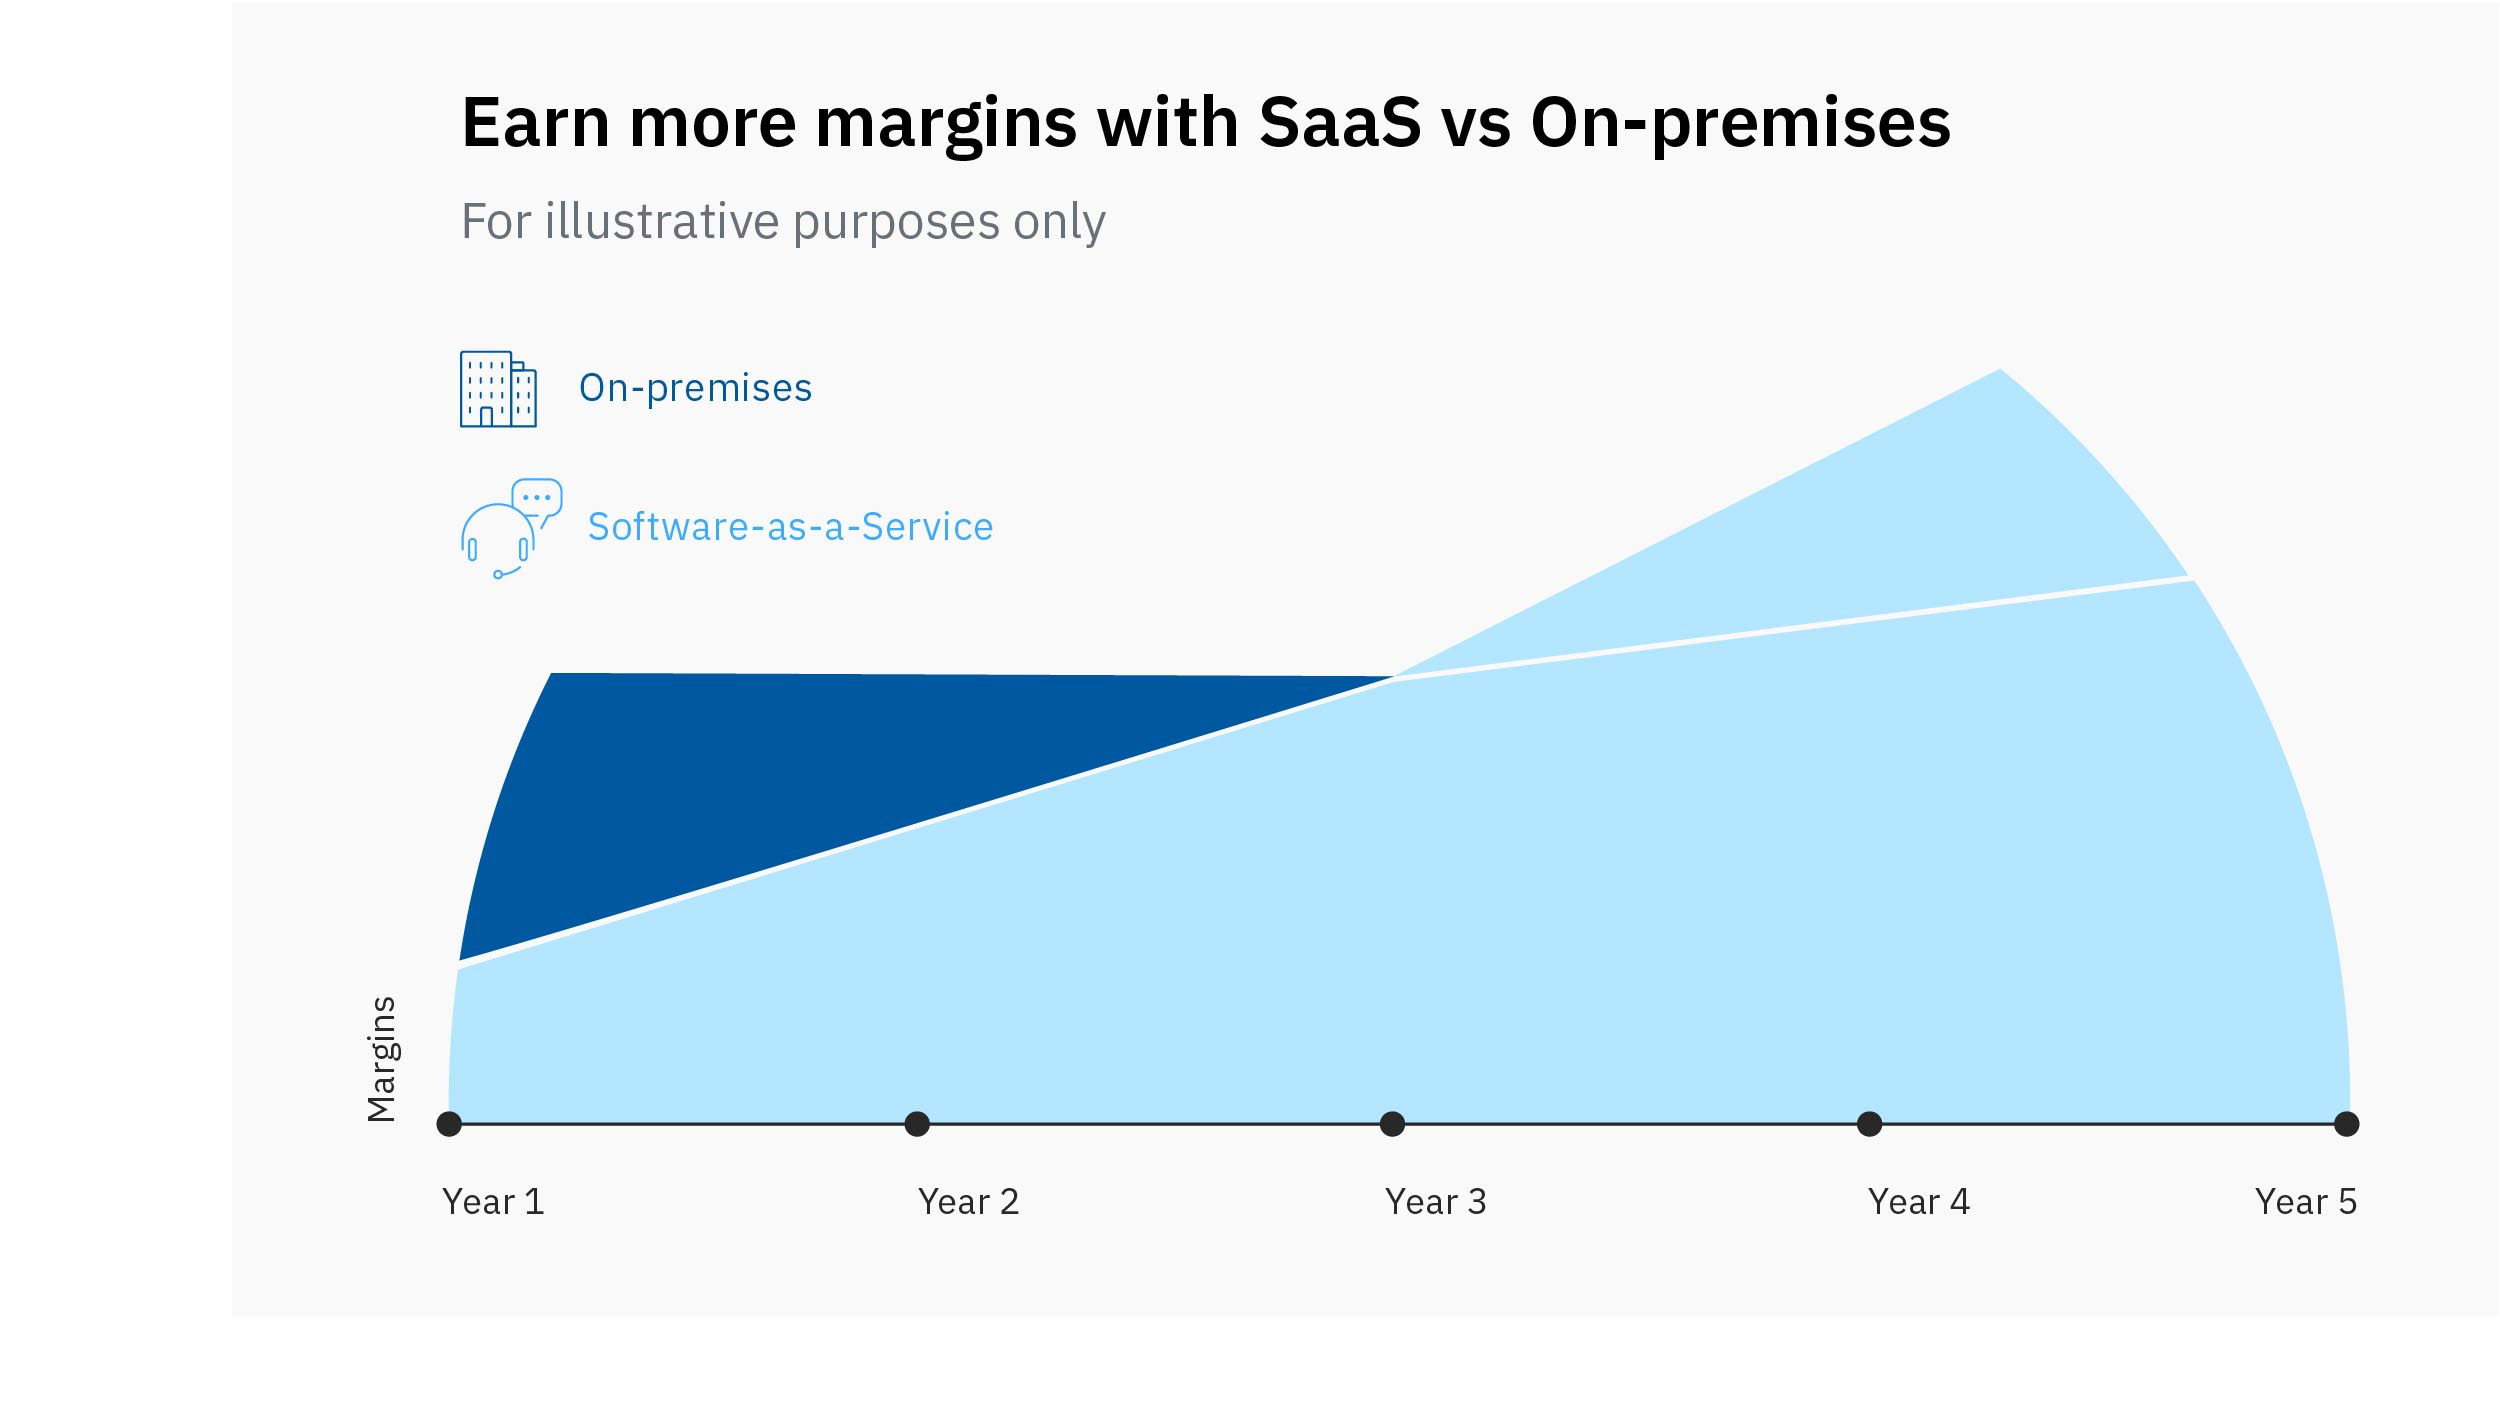 SaaS vs On-premises